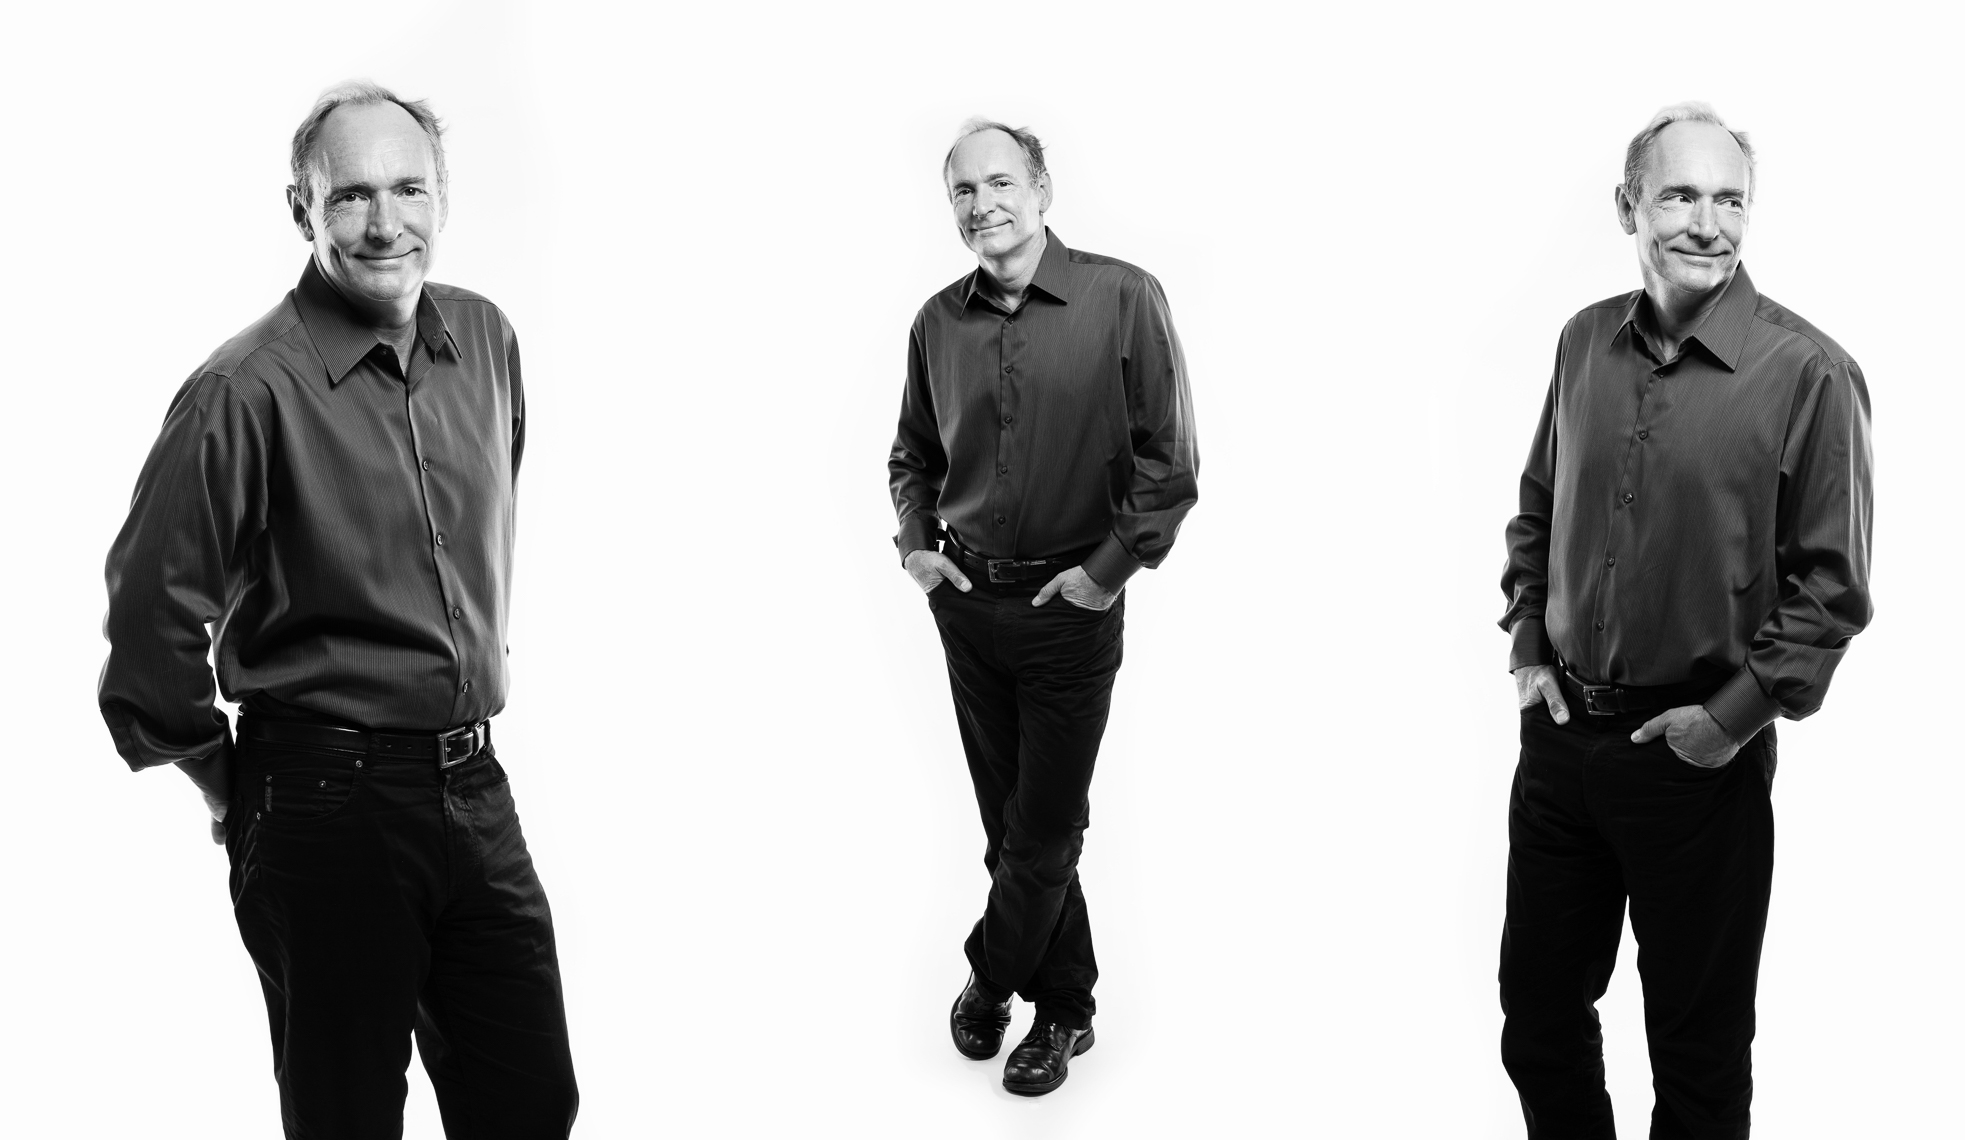 Sir Tim Berners-Lee, inventor of the WWW, for Time Magazine • Jason Grow Photography